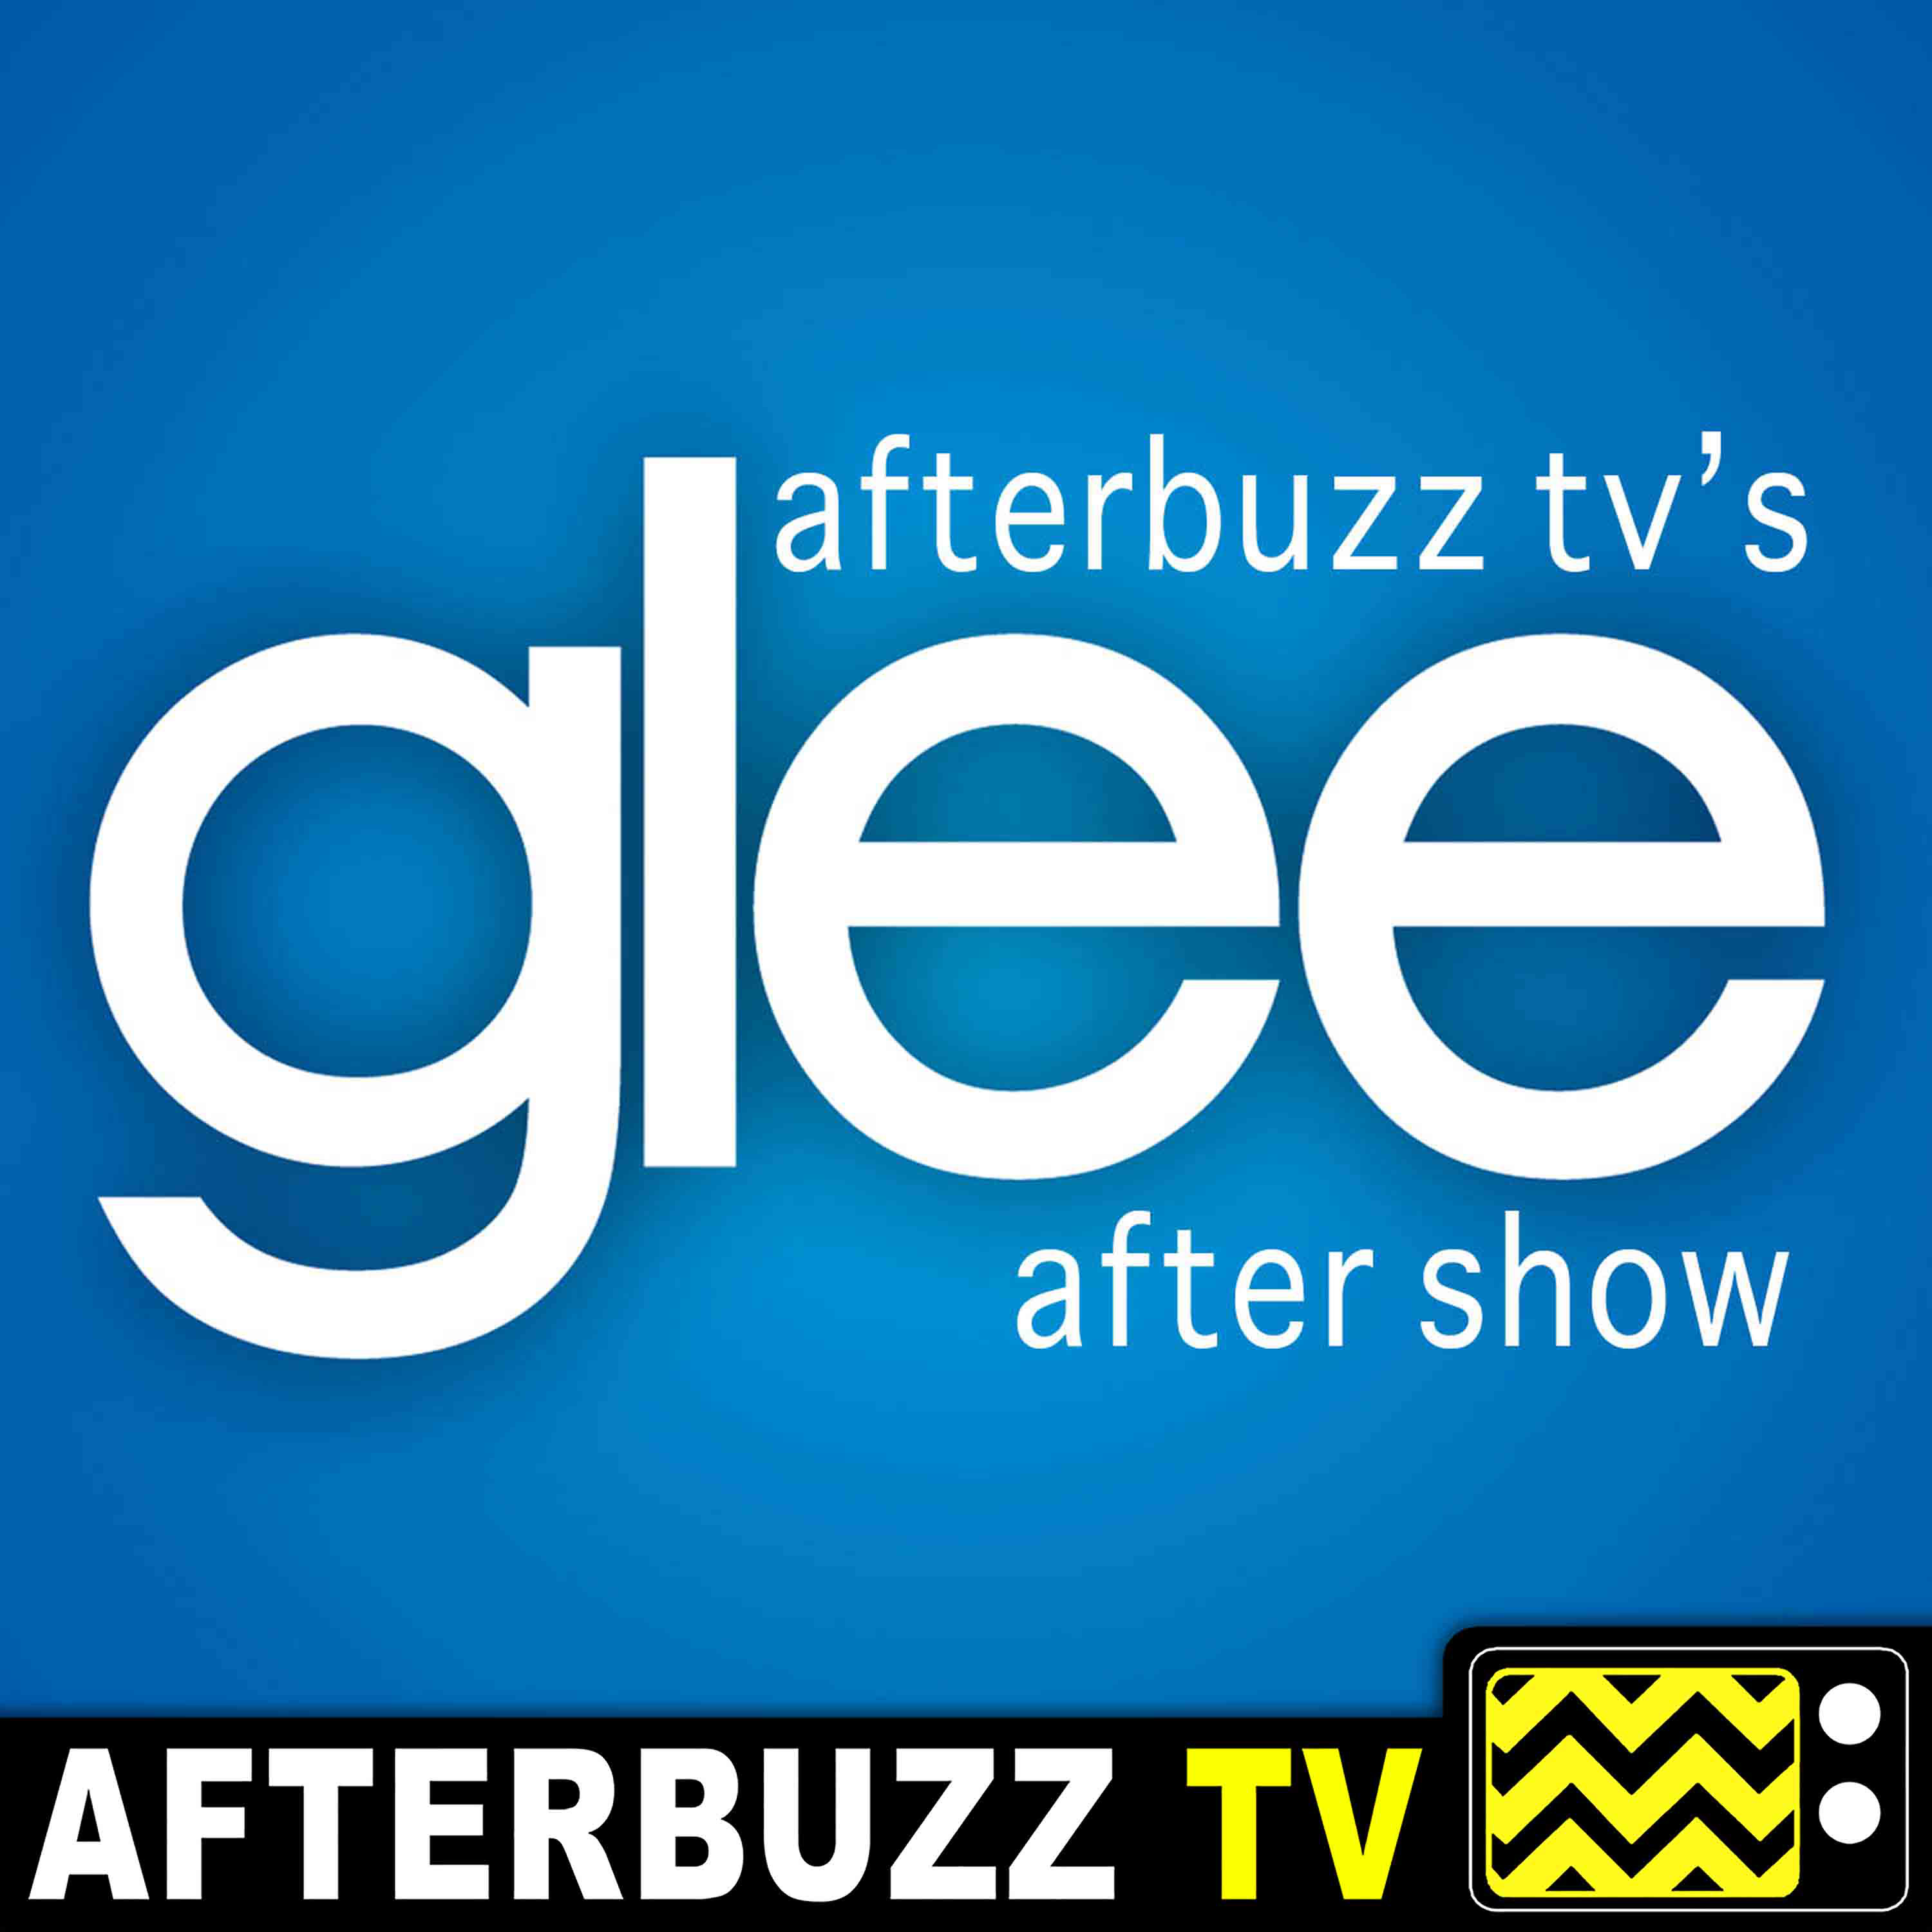 Glee Reviews and After Show - AfterBuzz TV